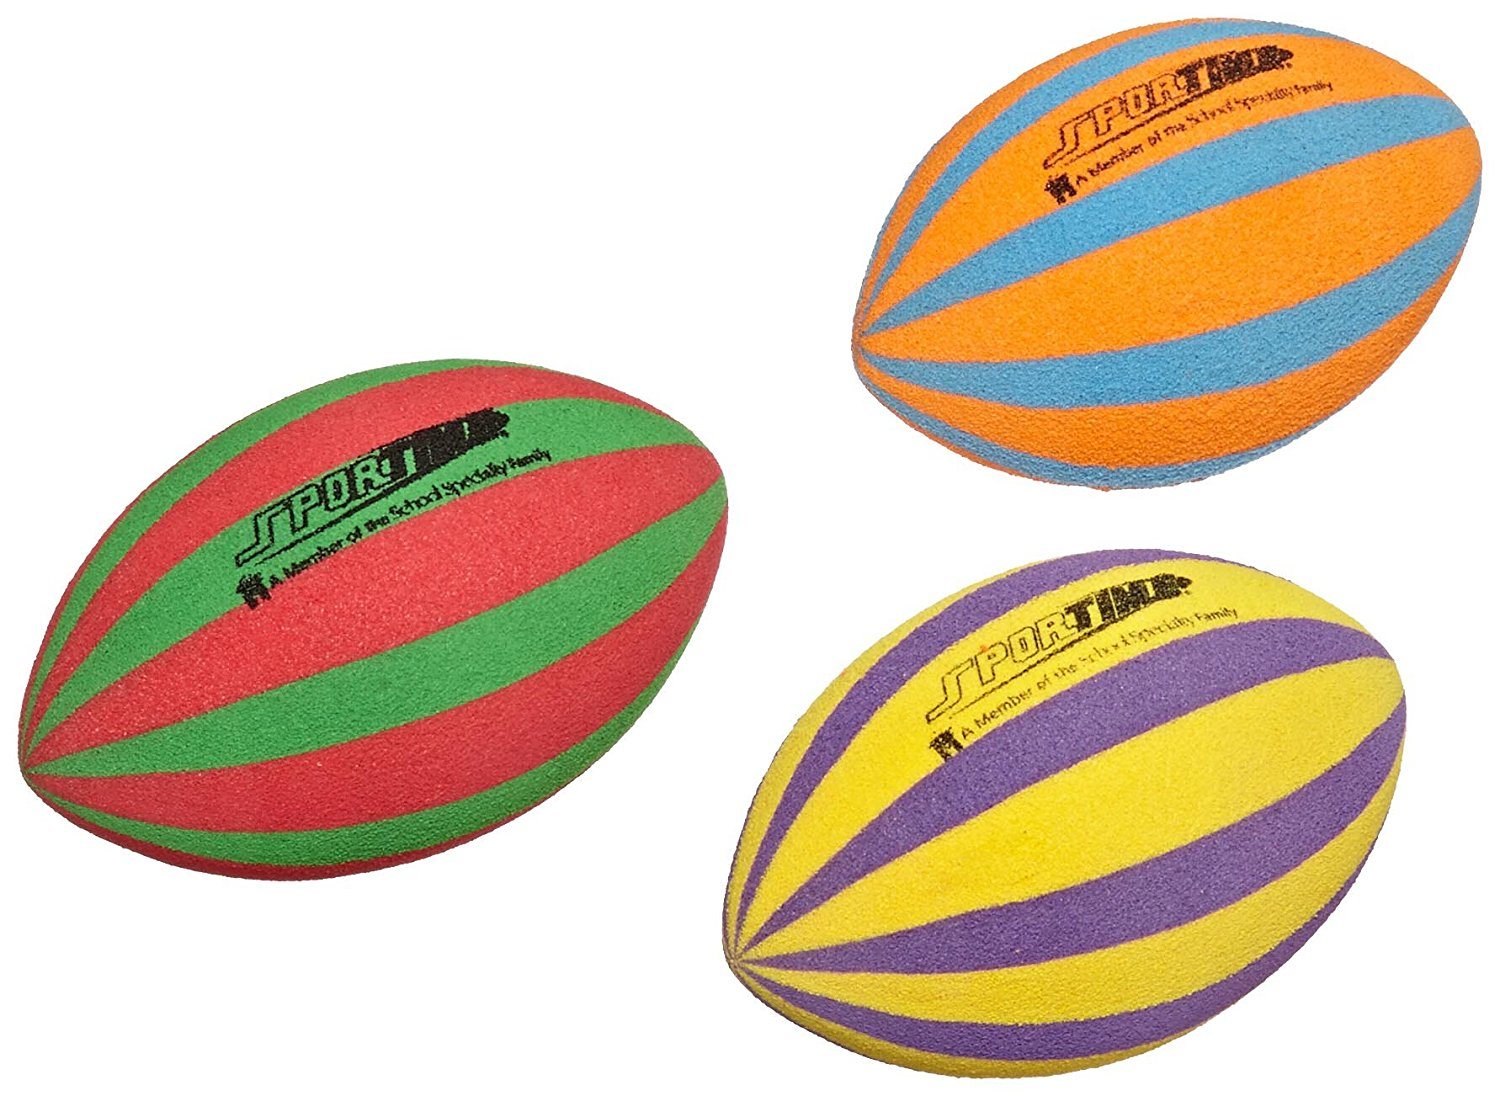 Waterproof Striped Training Football Set of 3 Assorted Colors, Set of 3 By Ultrafoam by